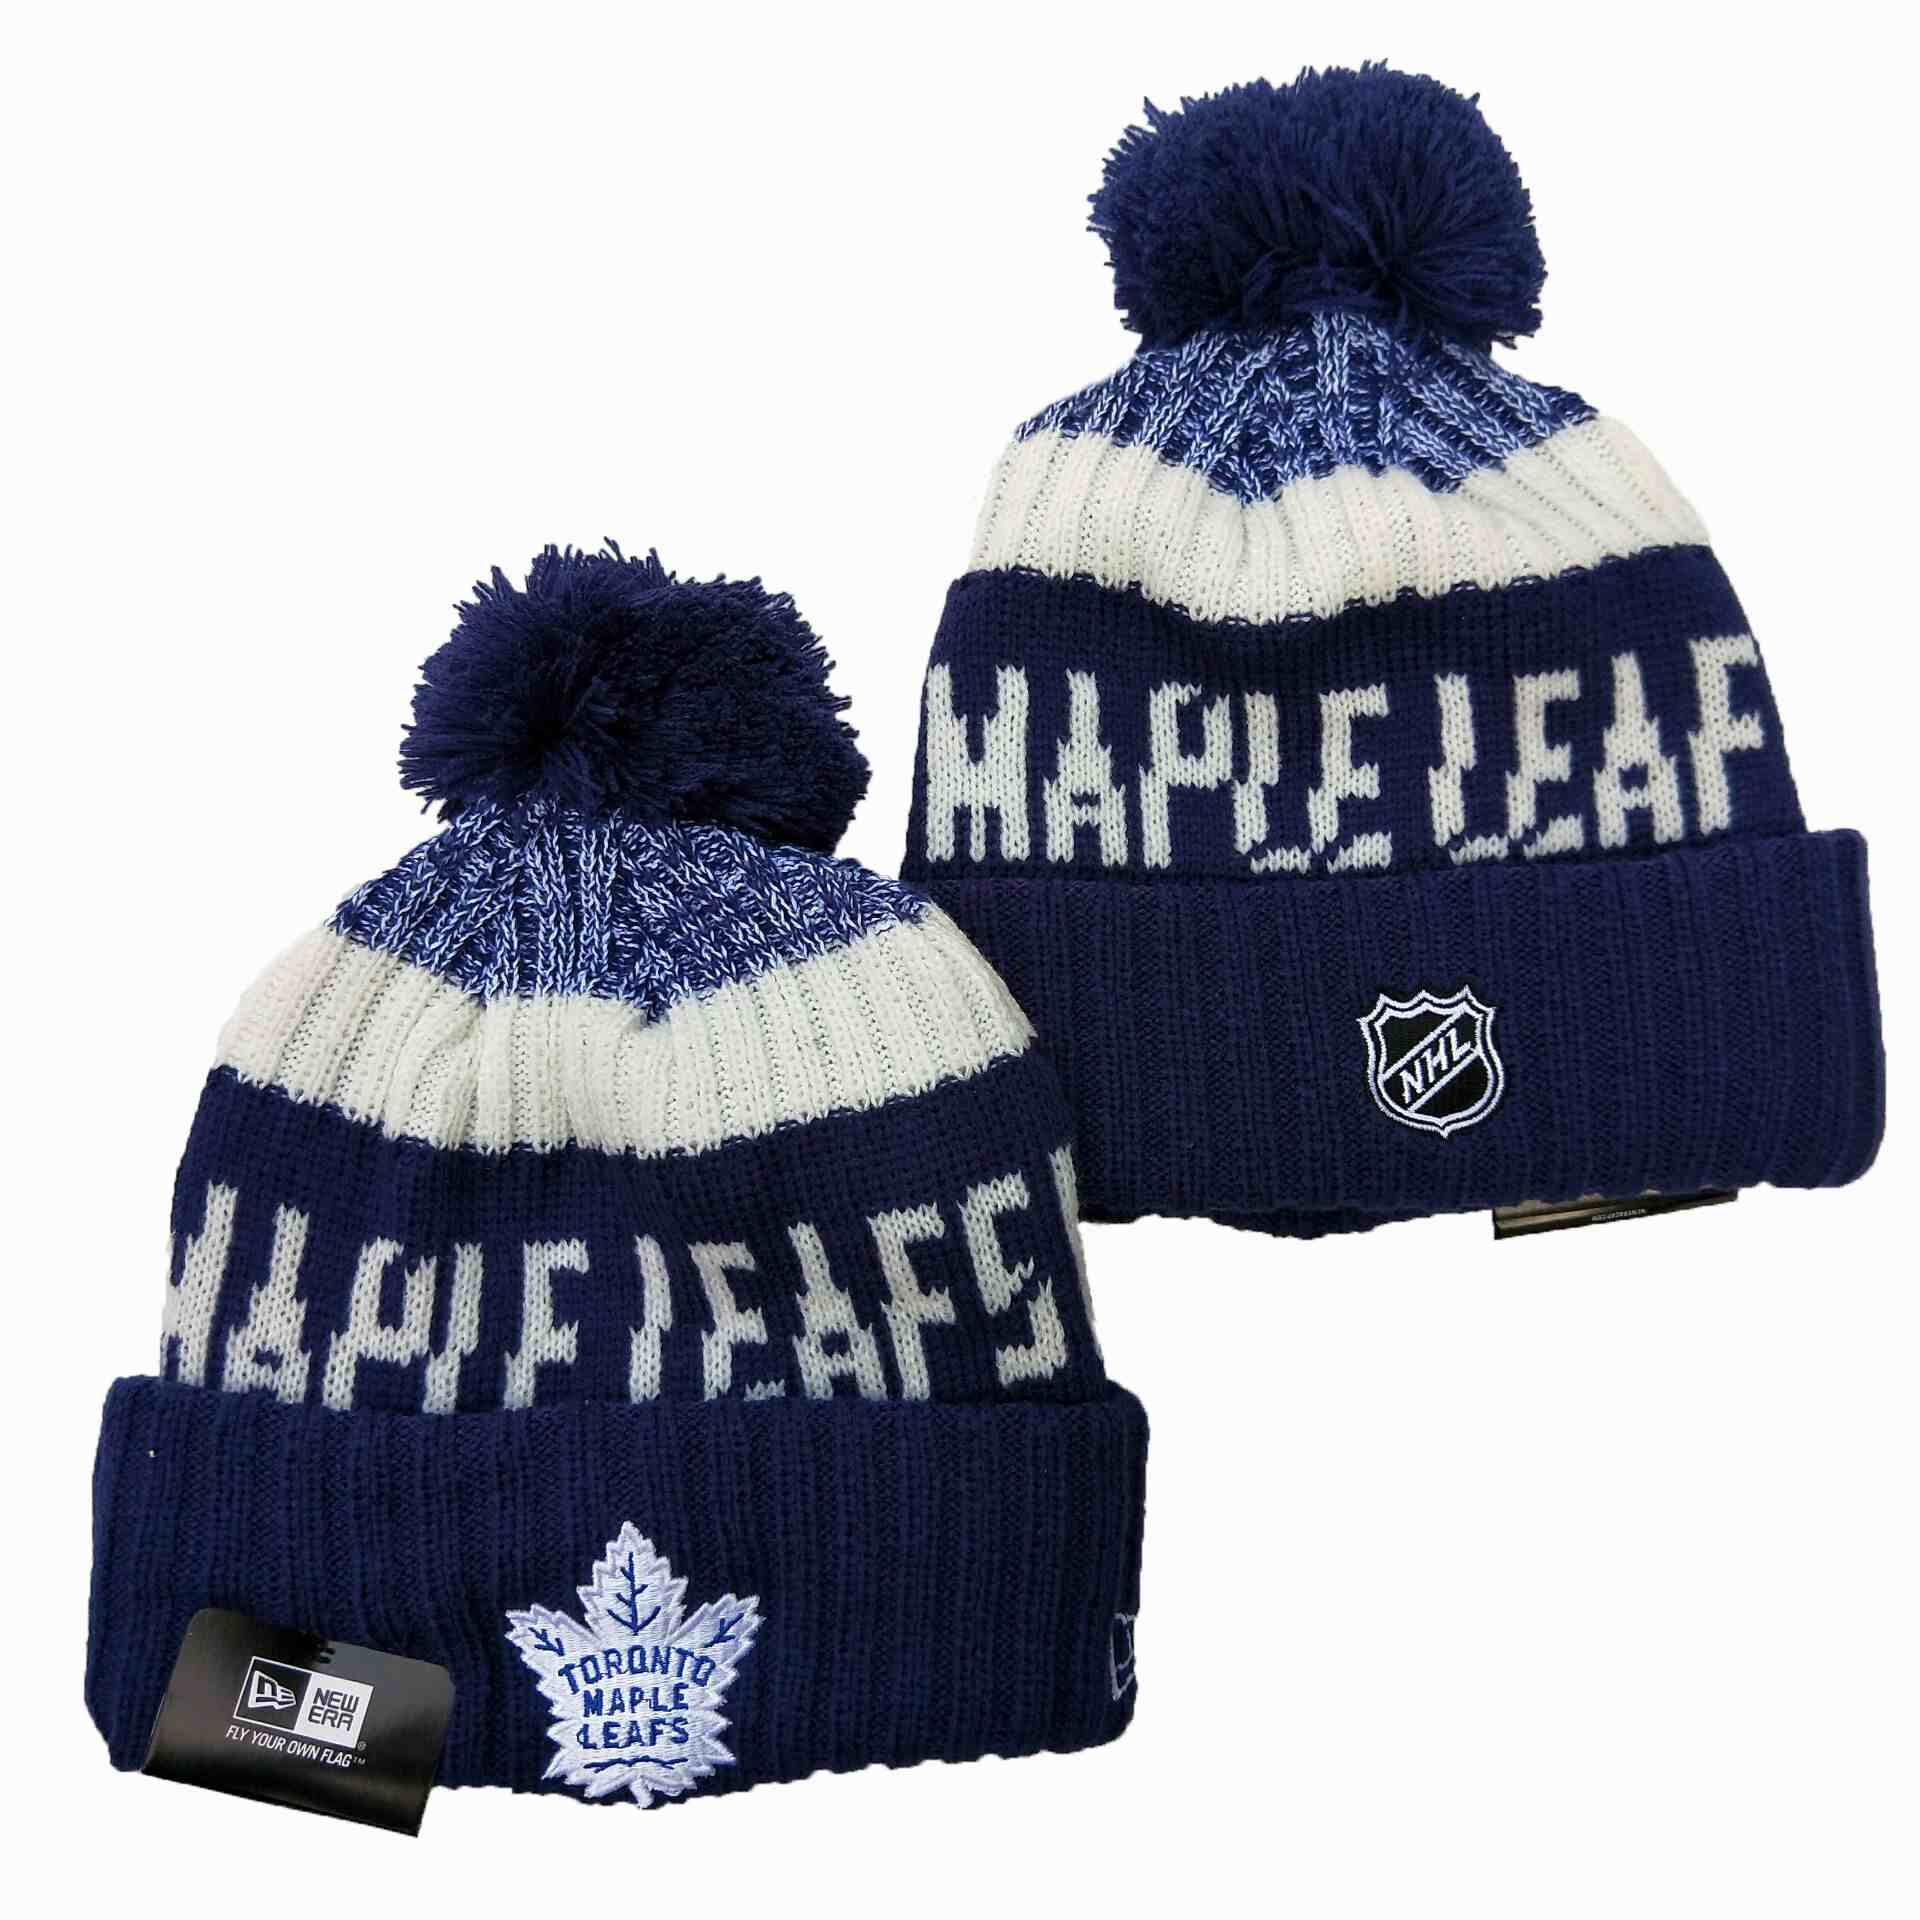 Maple-Leafs-Team-Logo-Navy-Wordmark-Cuffed-Pom-Knit-Hat-YD